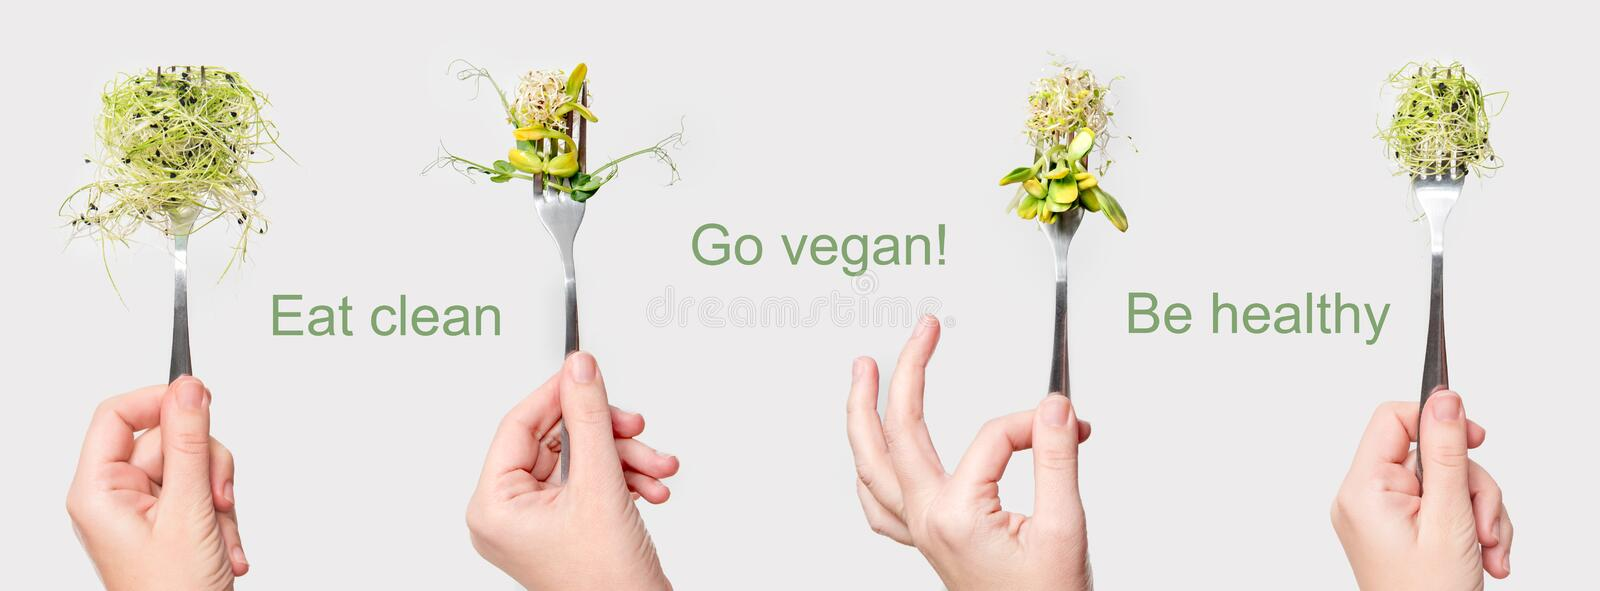 Woman hand holding micro greens on fork. Healthy eating, fresh garden produce organically grown. Symbol of health and. Vitamins from nature. Microgreens, vegan royalty free stock photo